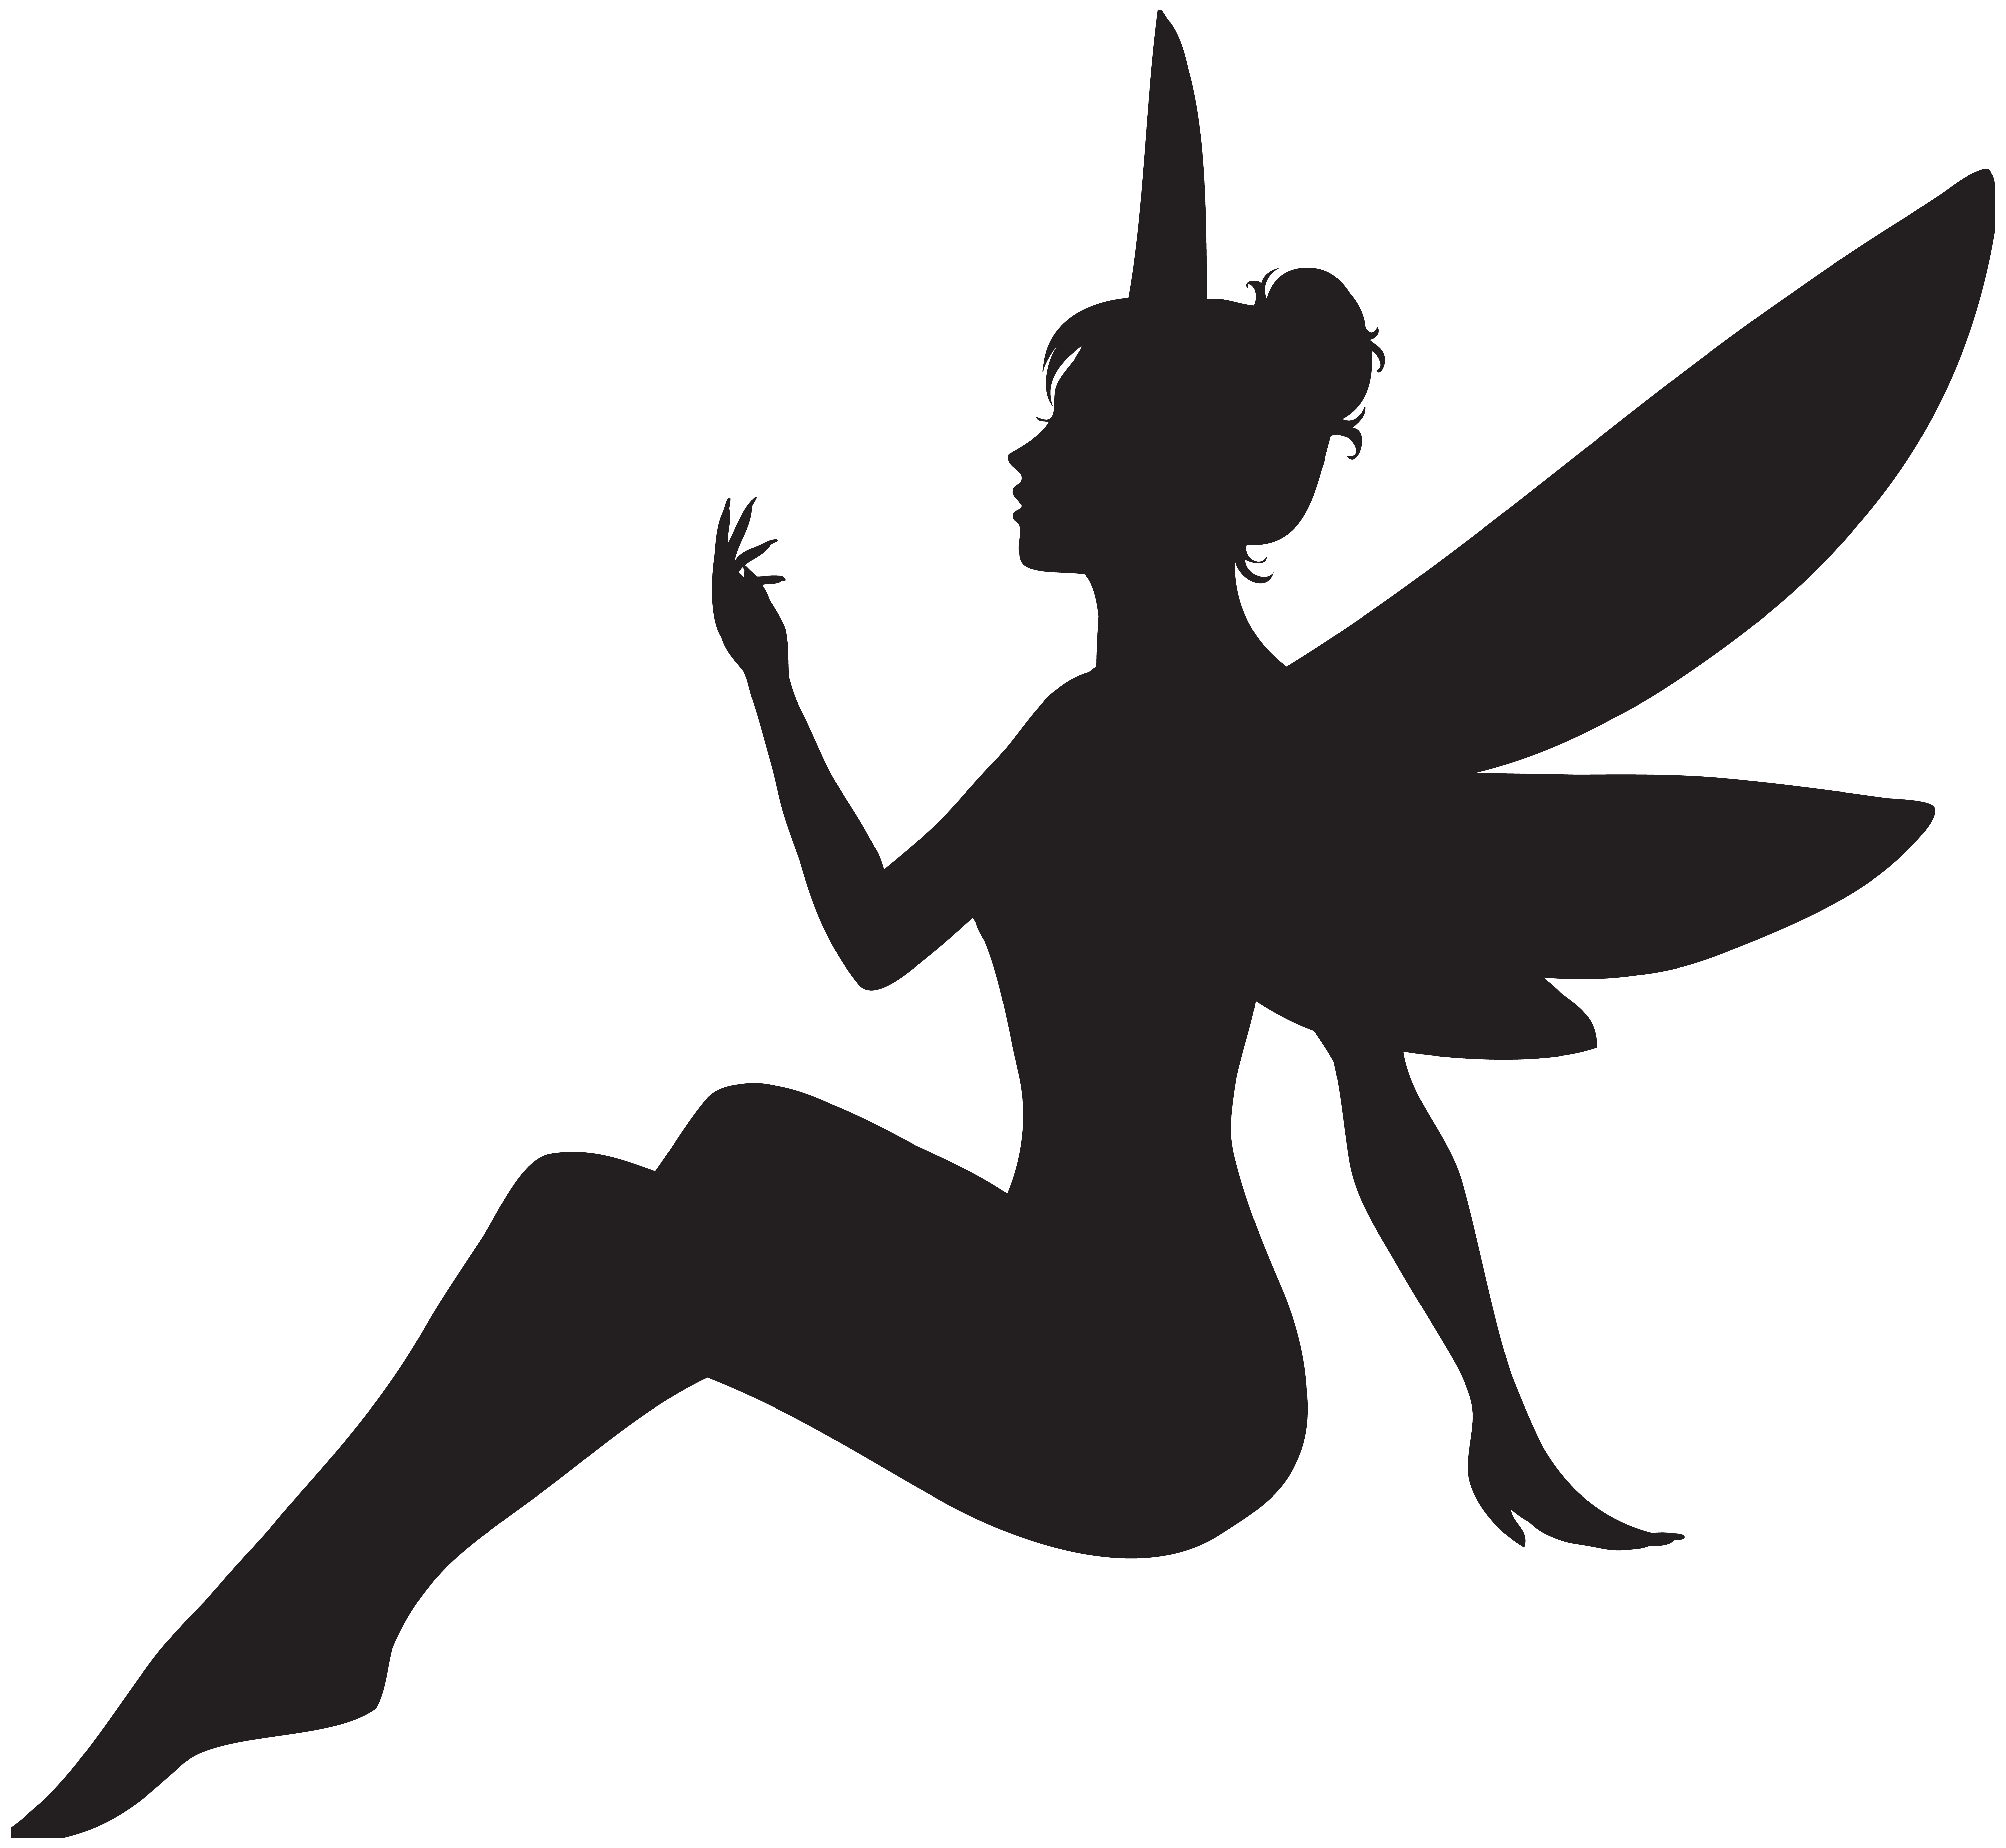 Fairy Silhouette PNG Clip Art Image.